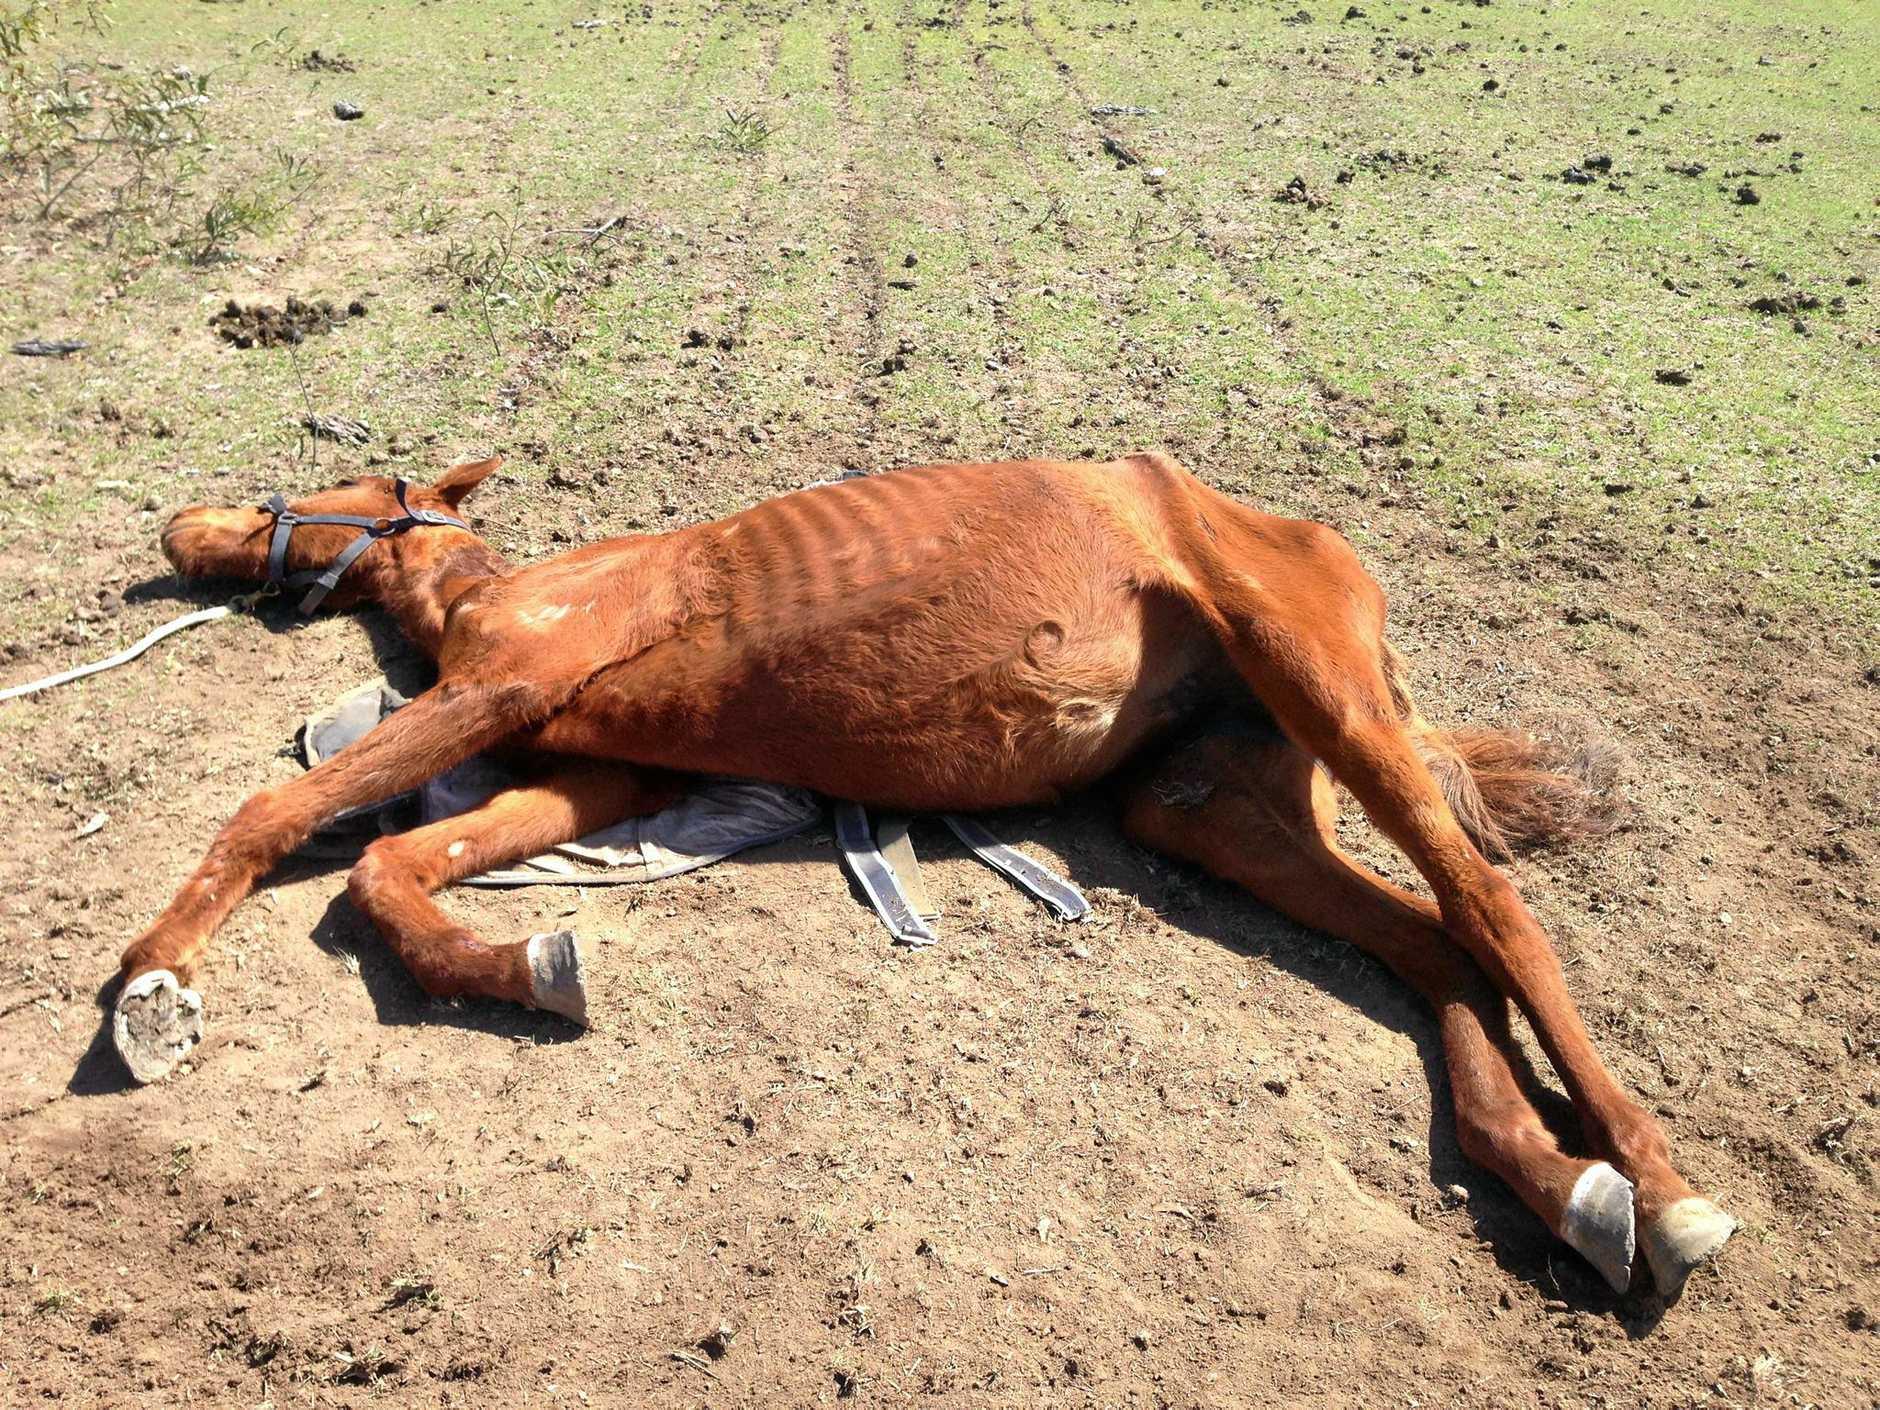 IN COURT: Investigations into Big Red's condition started in August 2014 after two people told the RSPCA Big Red was down and another horse had died in a similar condition on the Regency Downs property weeks before.